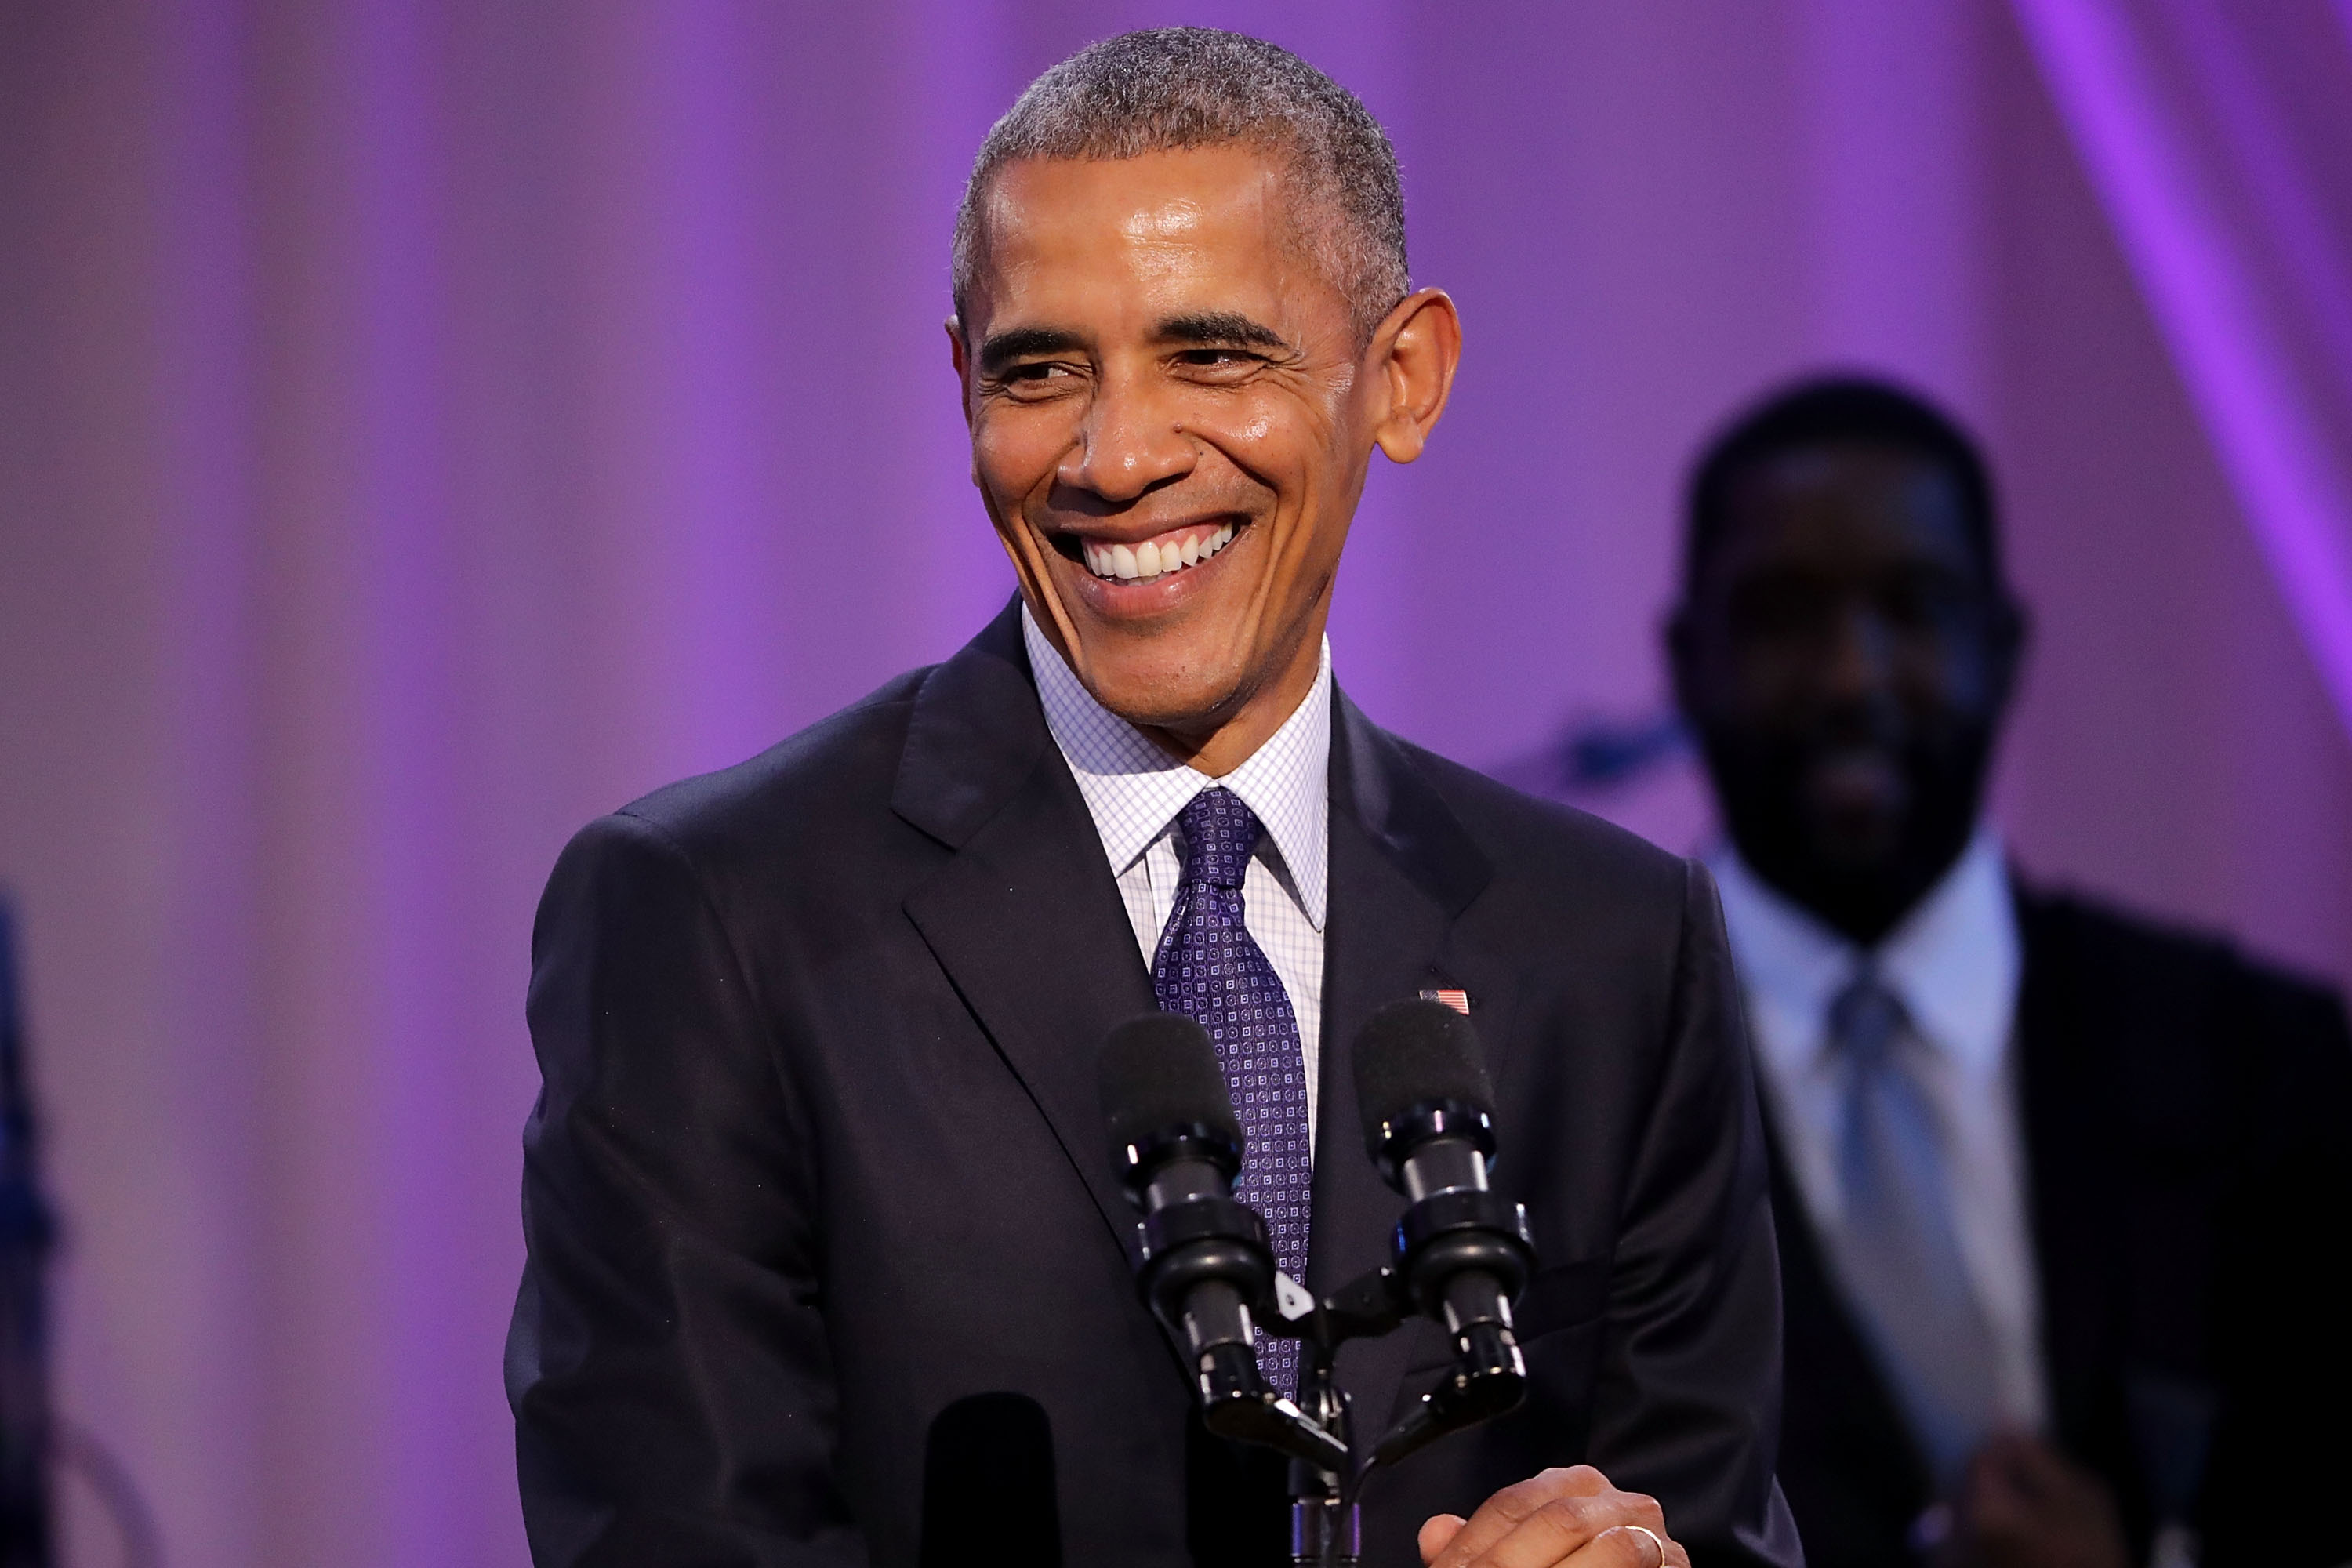 "WASHINGTON, DC - OCTOBER 21:  U.S. President Barack Obama delivers remarks during the BET's 'Love and Happiness: A Musical Experience"" in a tent on the South Lawn of the White House October 21, 2016 in Washington, DC. The show will feature performances by Usher, Jill Scott, Common, The Roots, Bell Biv DeVoe, Janelle Monae, De La Soul, Yolanda Adams, Michelle Williams and Kiki Sheard, along will appearances by actors Samuel L. Jackson, Jesse Williams and Angela Bassett.  (Photo by Chip Somodevilla/Getty Images)"